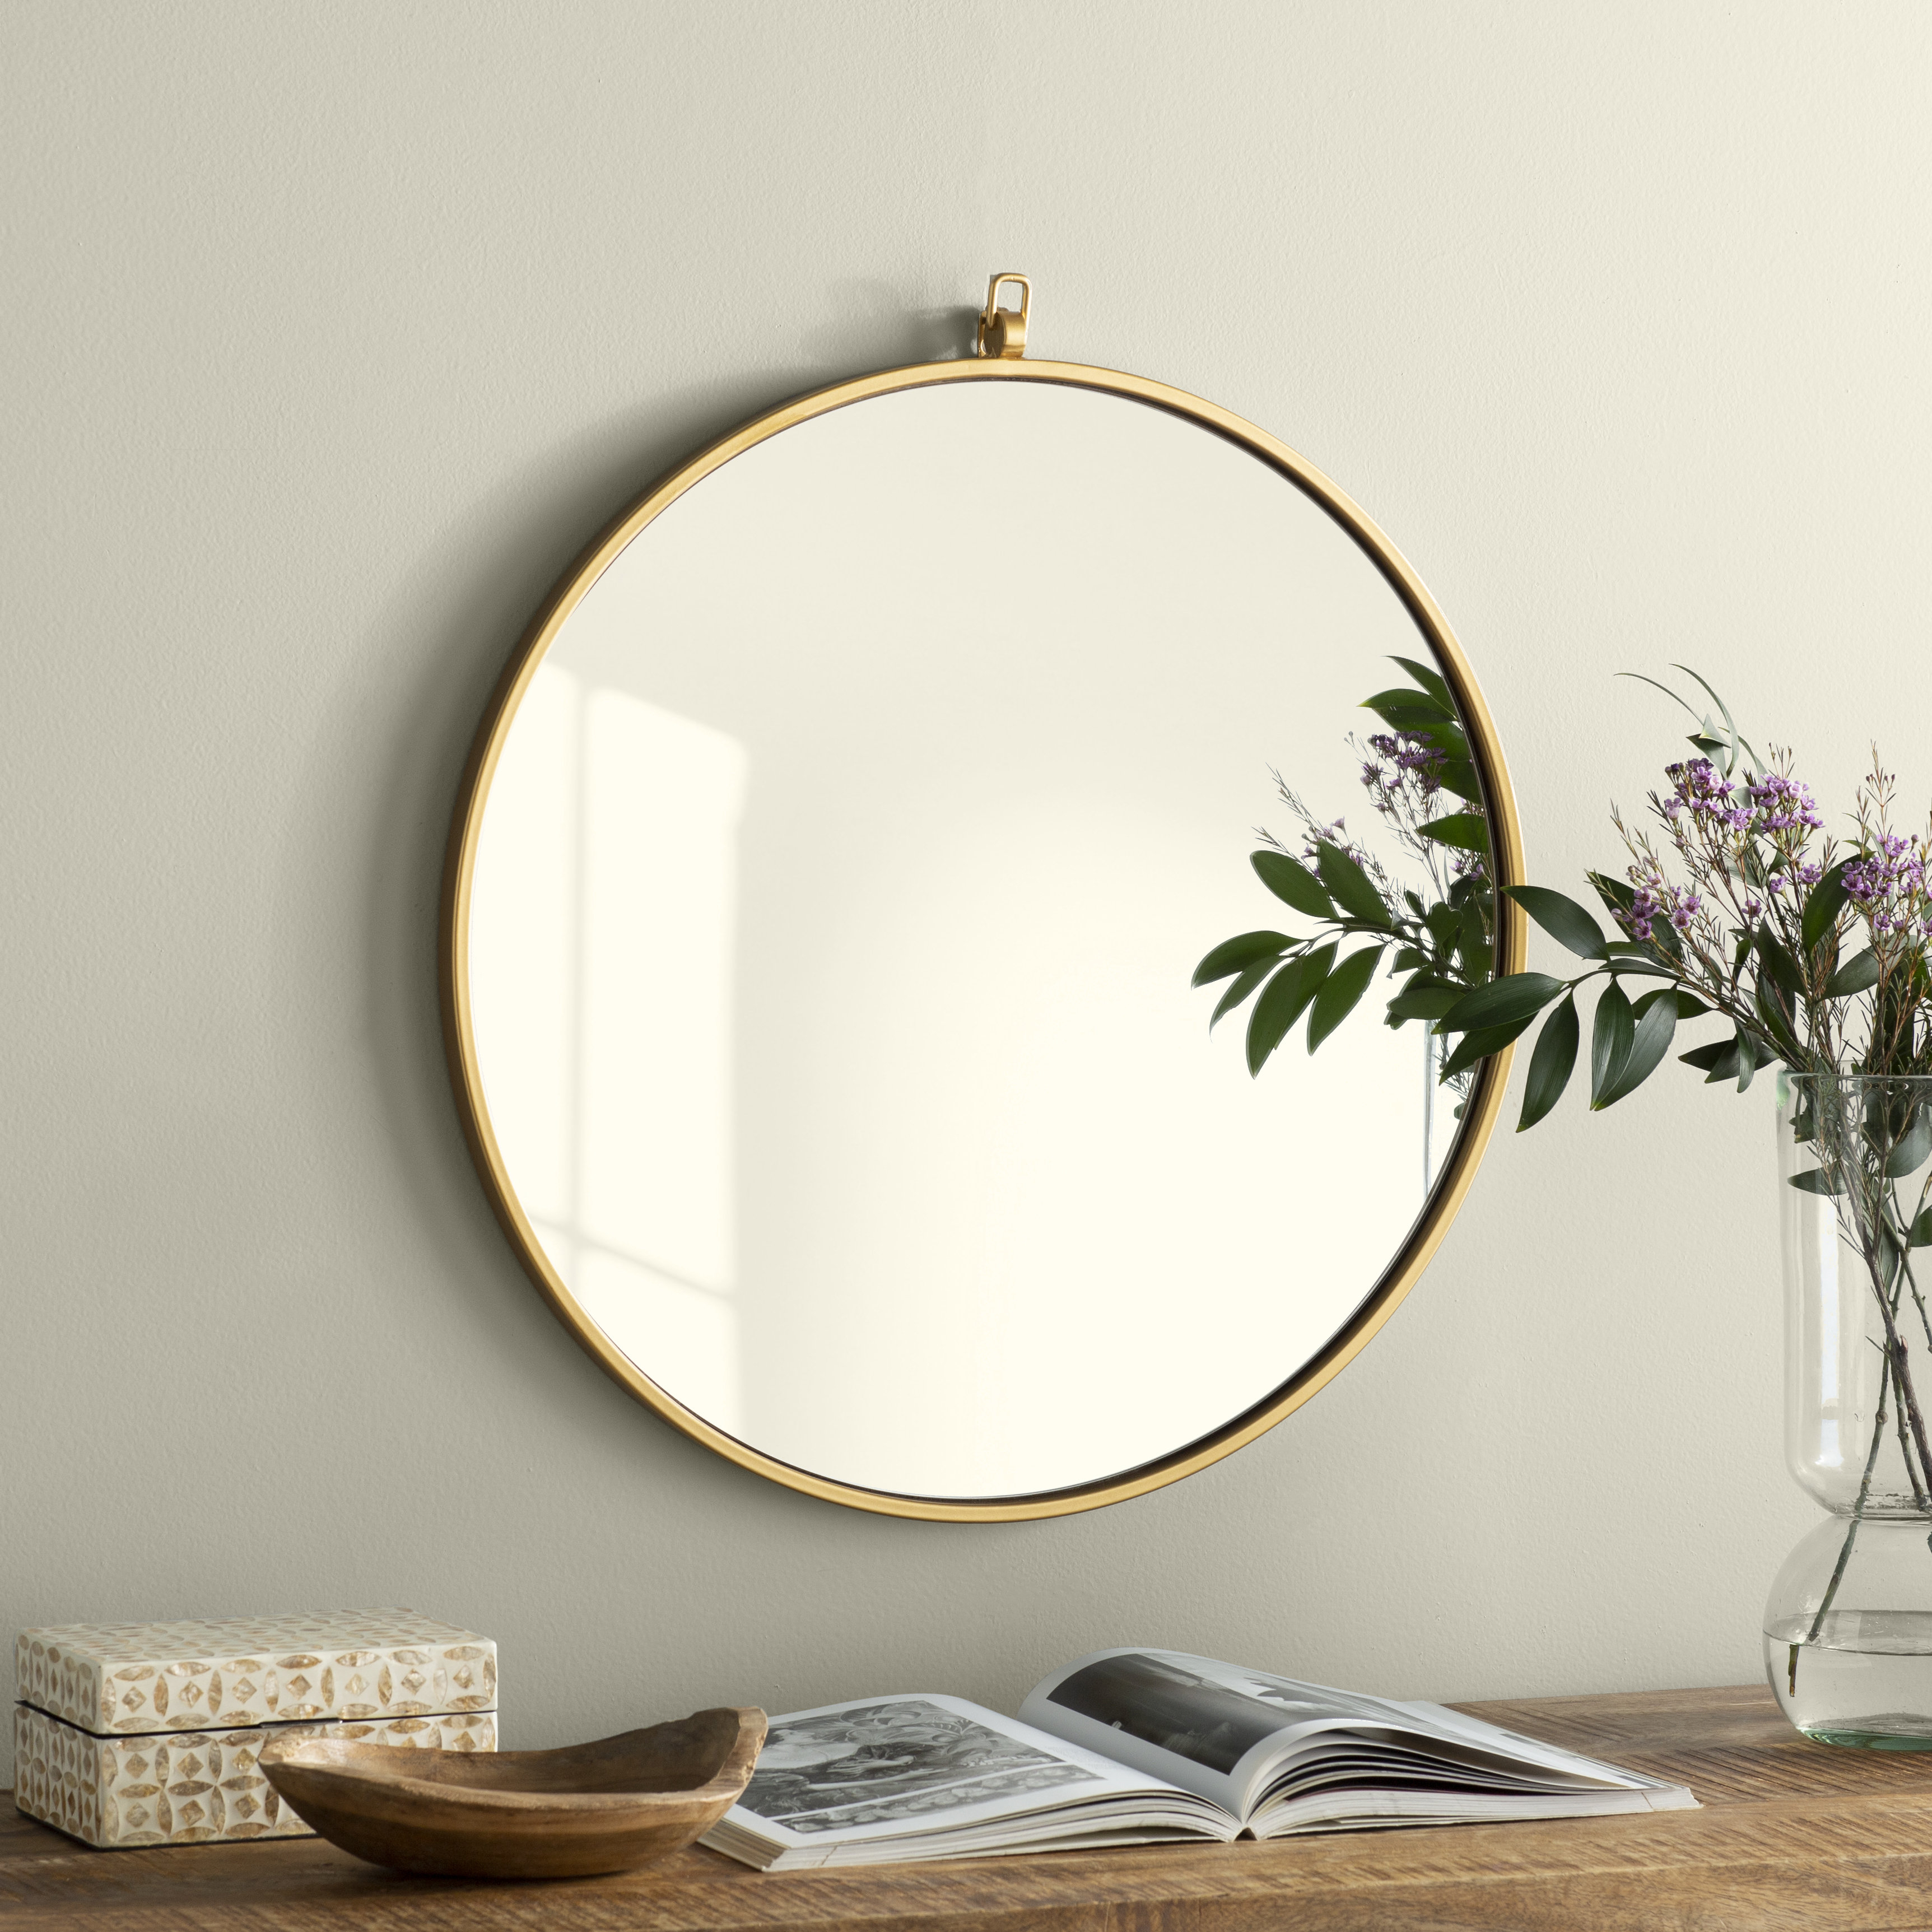 Joss & Main Essentials Accent Mirror & Reviews | Joss & Main with regard to Swagger Accent Wall Mirrors (Image 11 of 30)